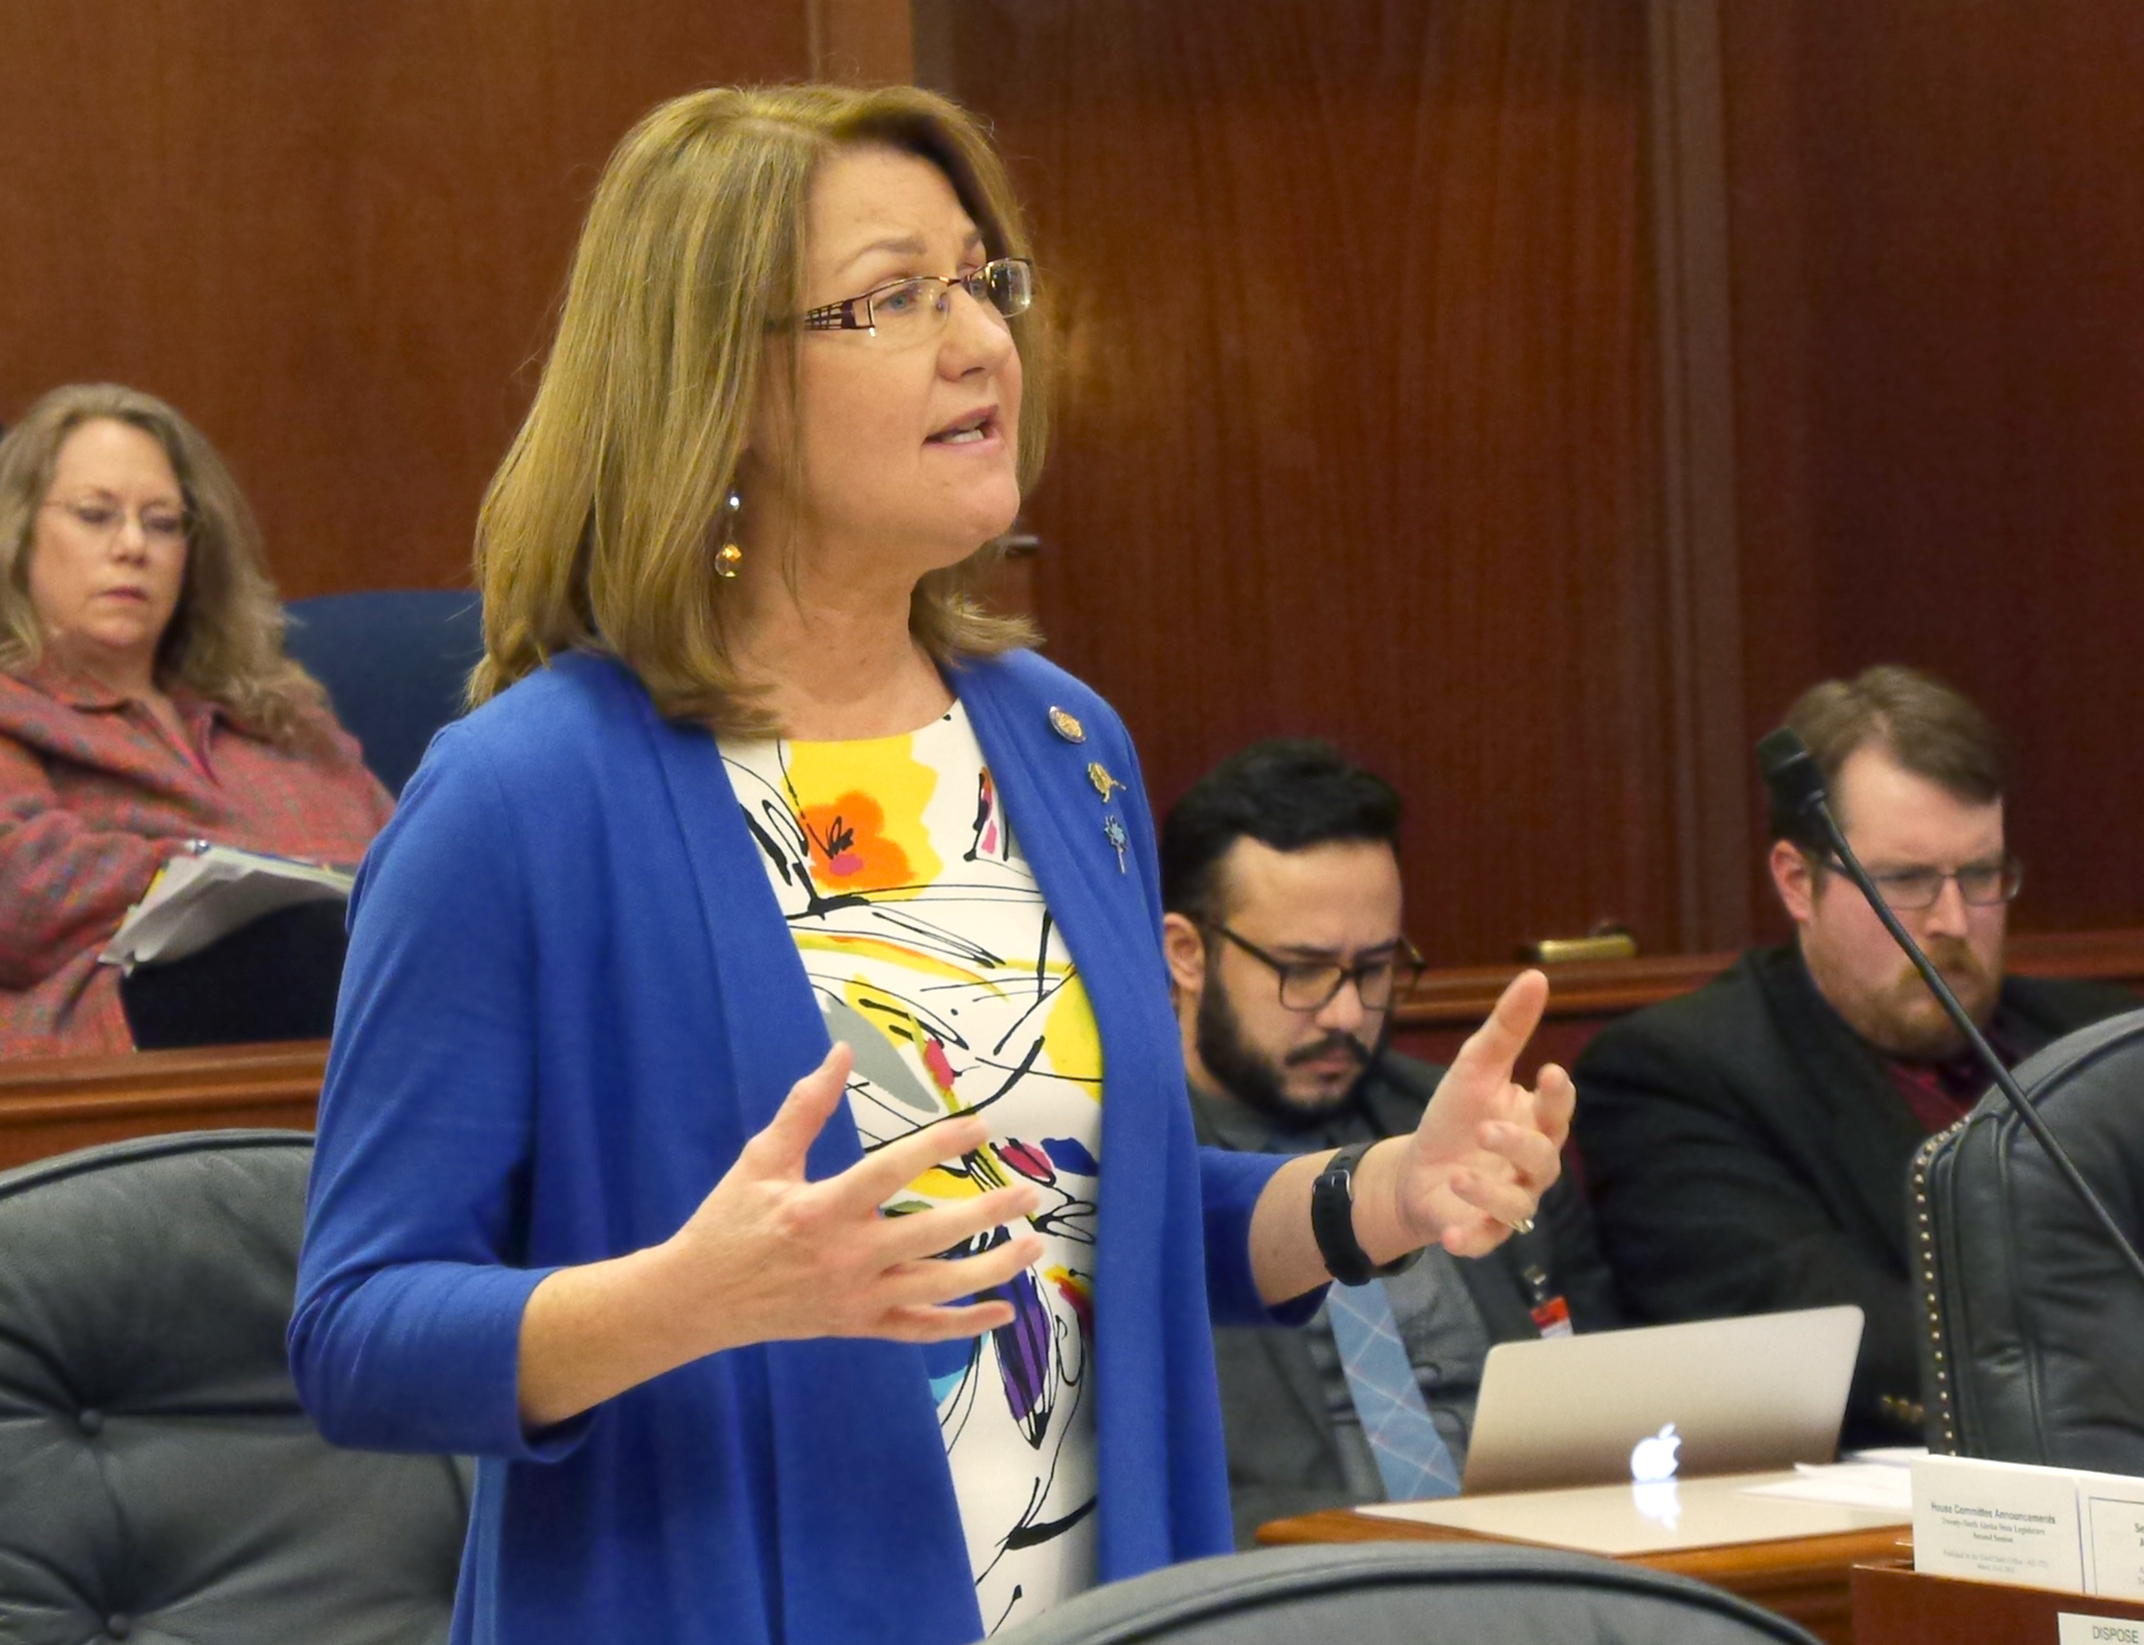 Sen. Anna MacKinnon, R-Eagle River, on the floor of the Senate during debate about the state operating budget, March 14, 2016. (Photo by Skip Gray/360 North)